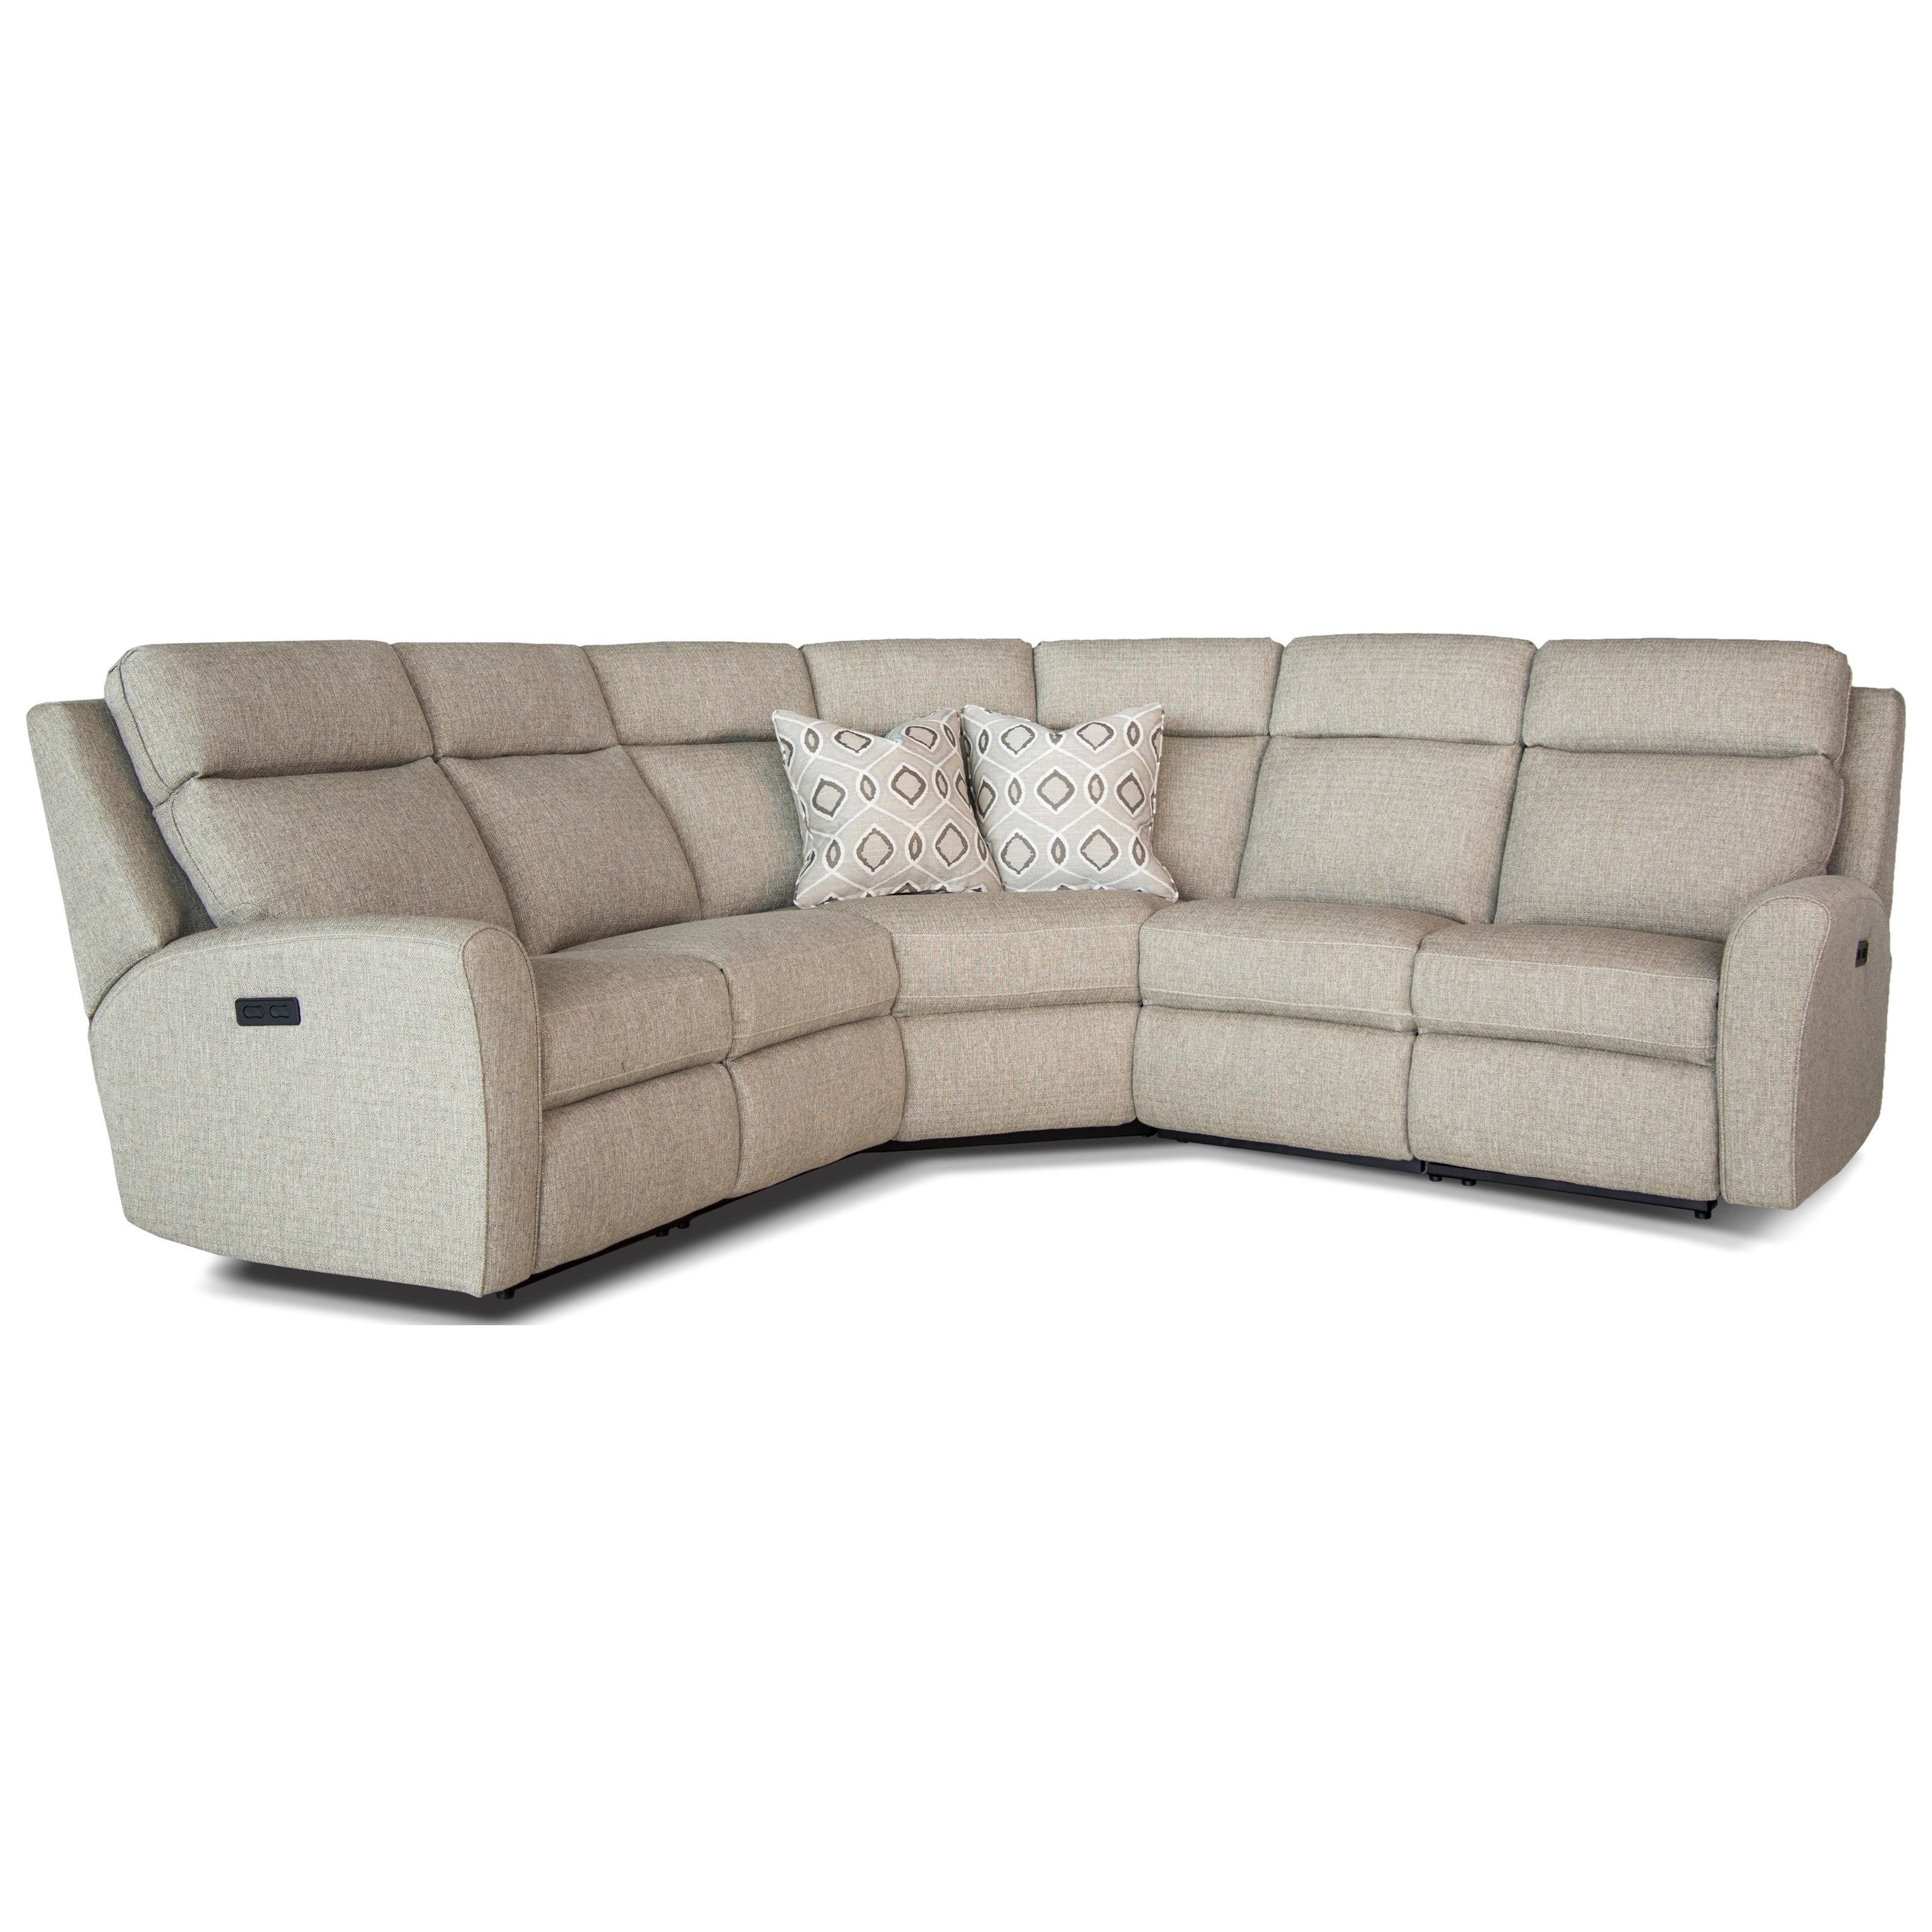 418 Motorized Reclining Sectional Sofa by Smith Brothers at Pilgrim Furniture City